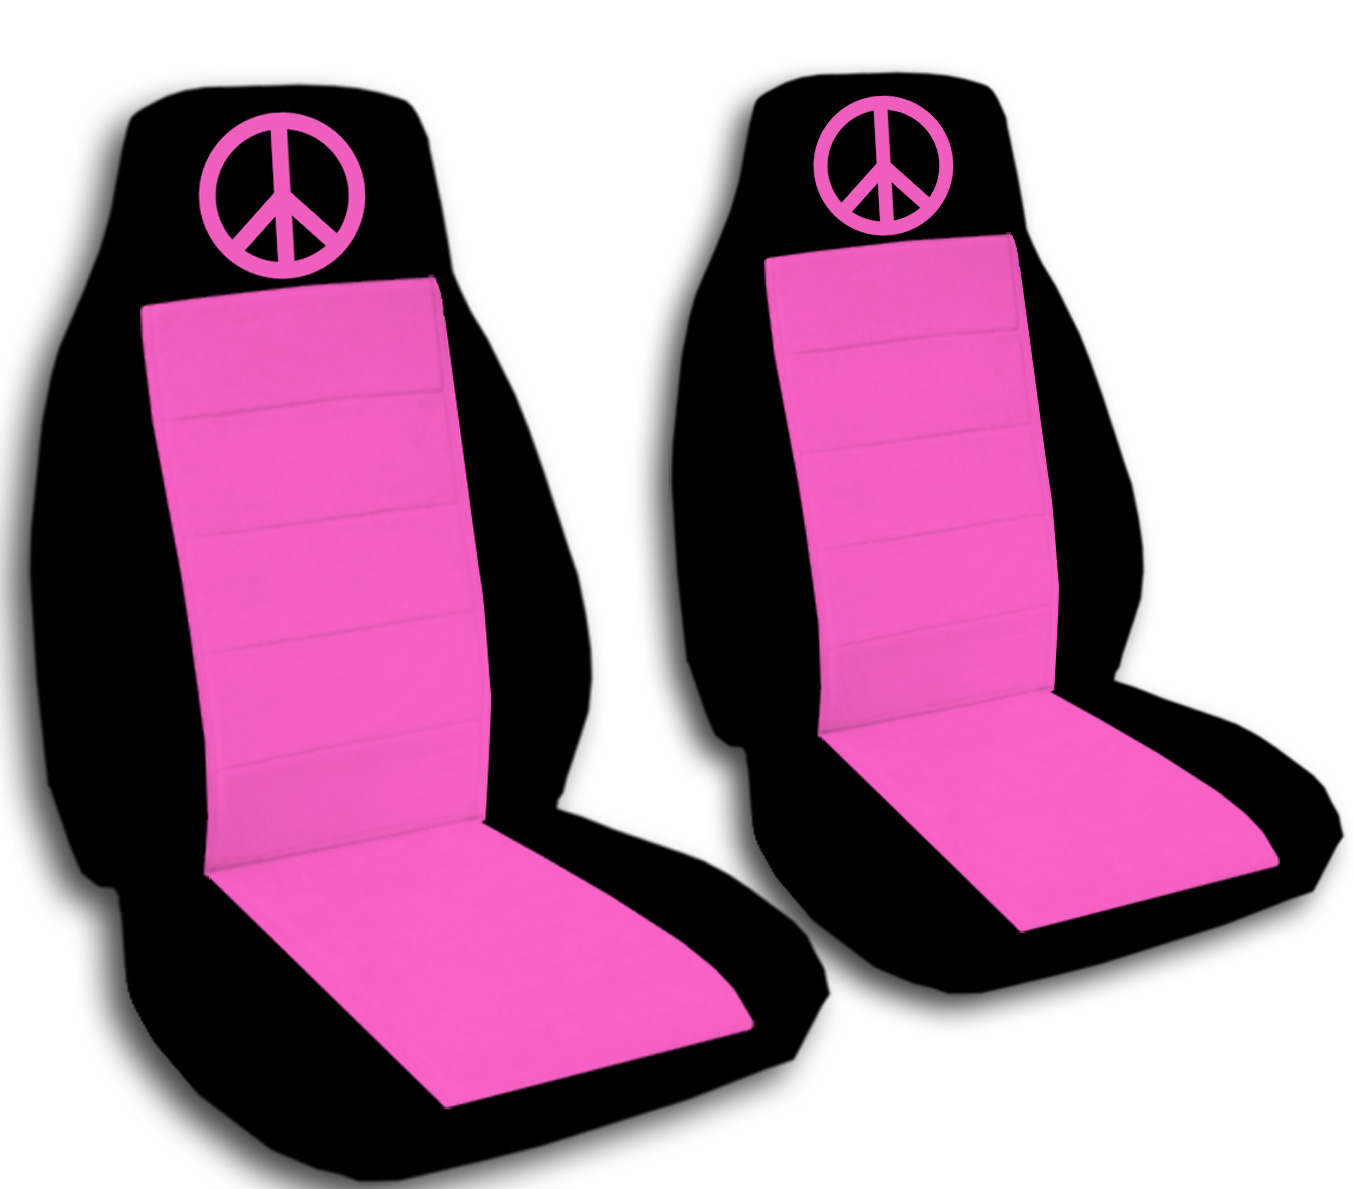 2 Front Lime Green Seat Covers with a Purple Insert.